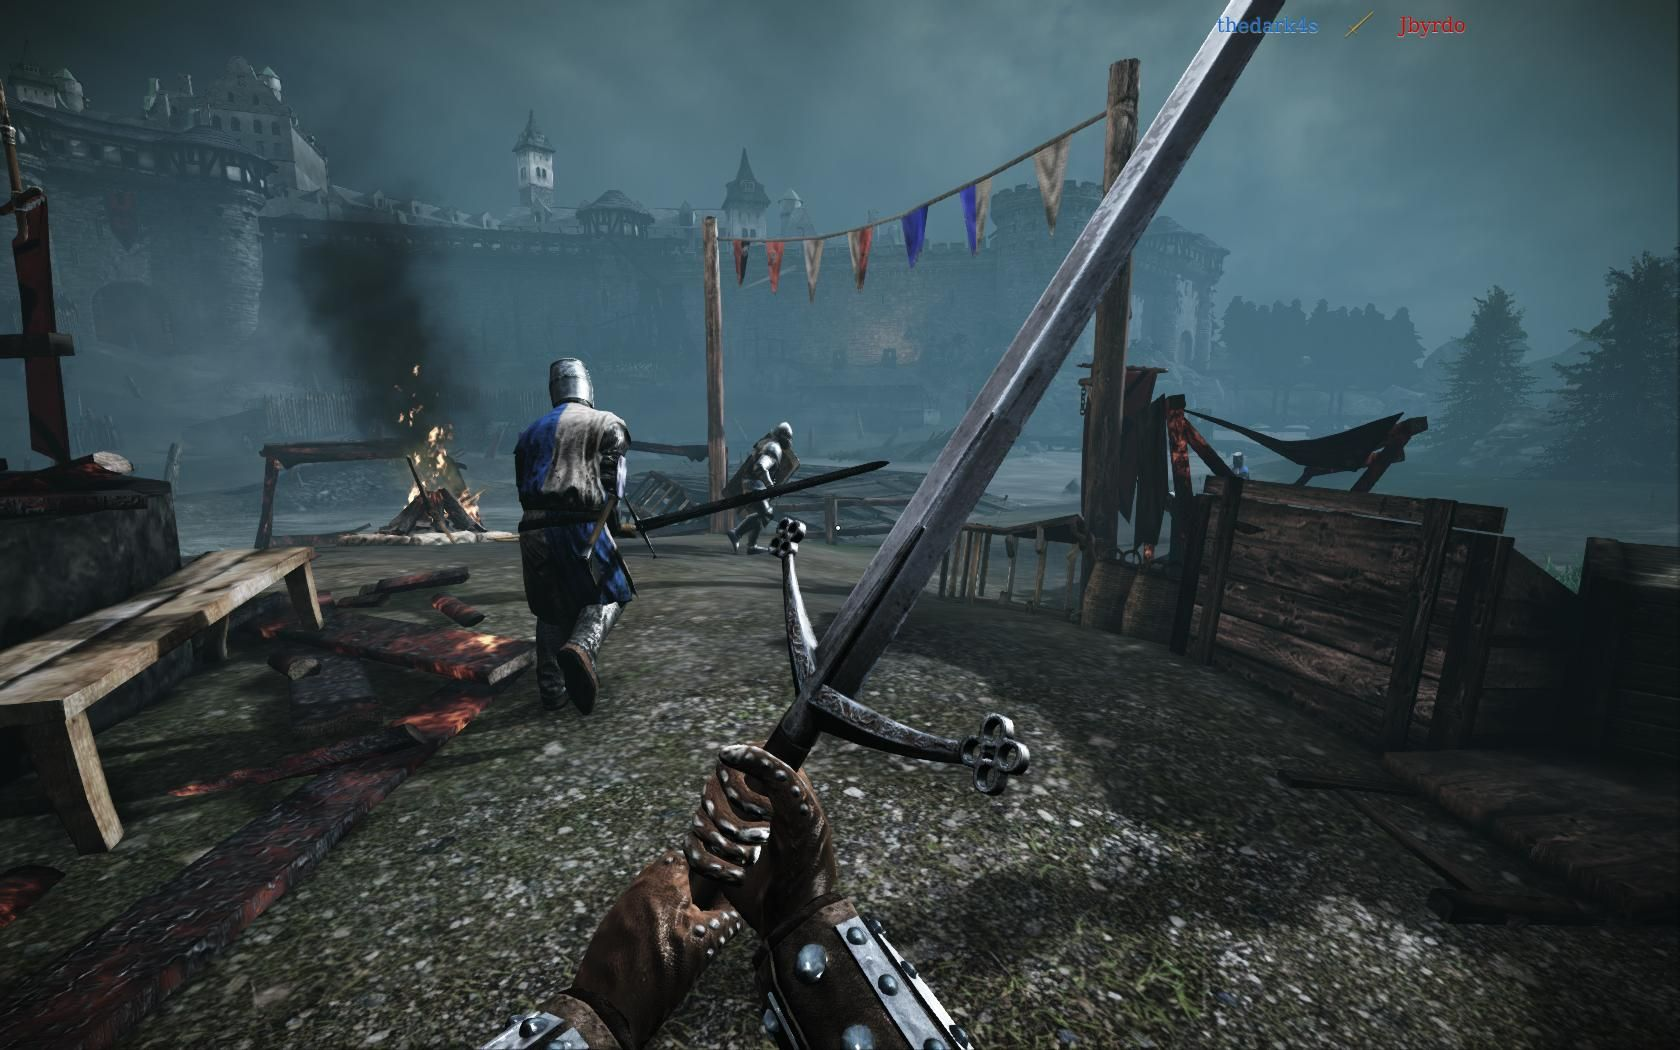 Swing swords and hatchets as chivalry: medieval warfare goes free.